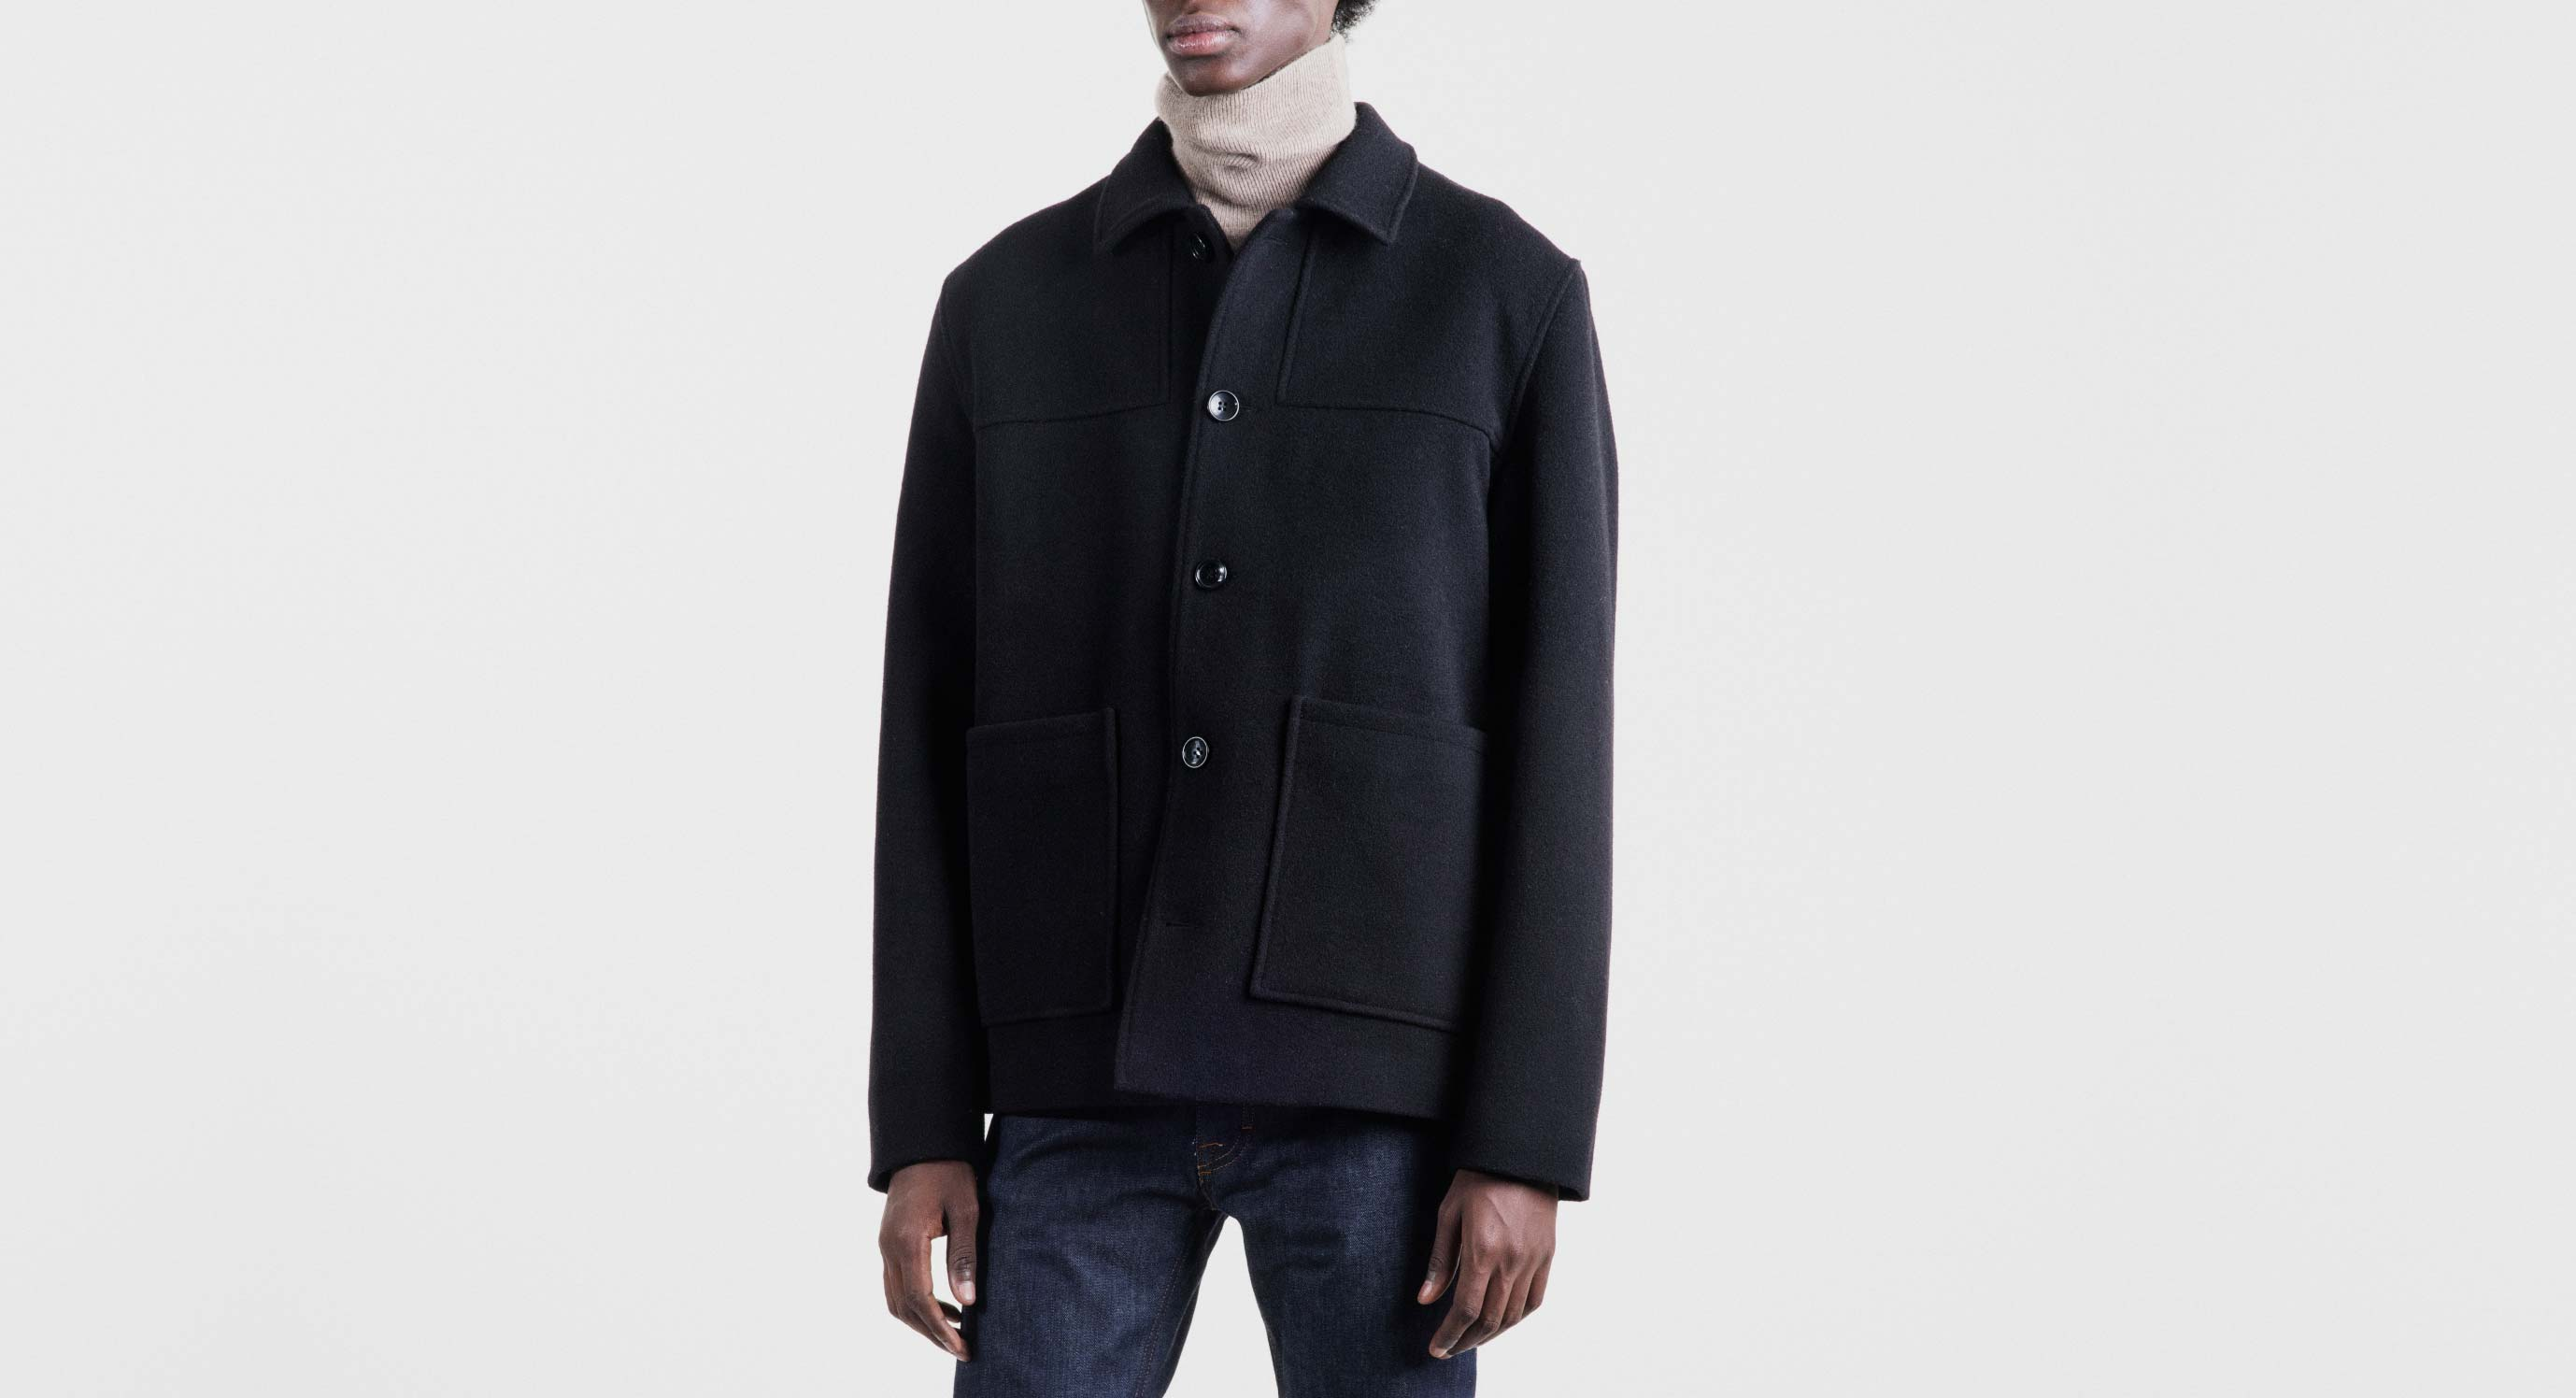 5 Of The Best Coats For Winter